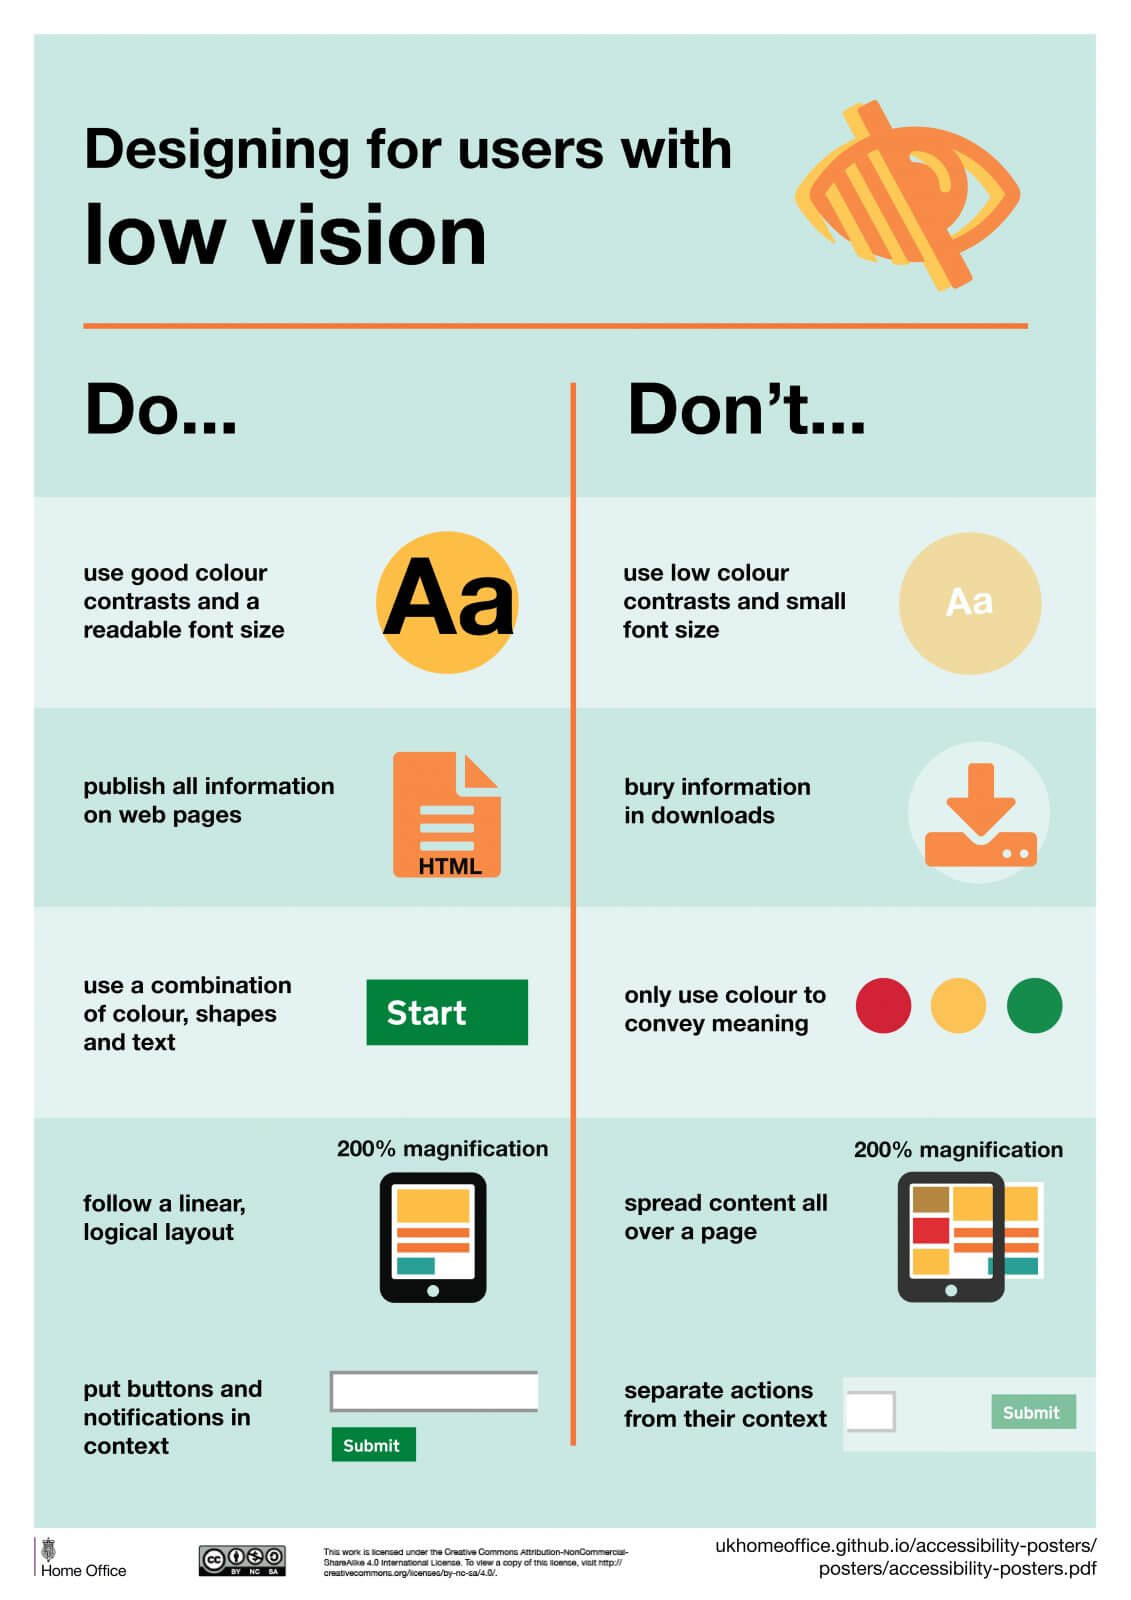 GOV.UK Designing For Users With Low Vision